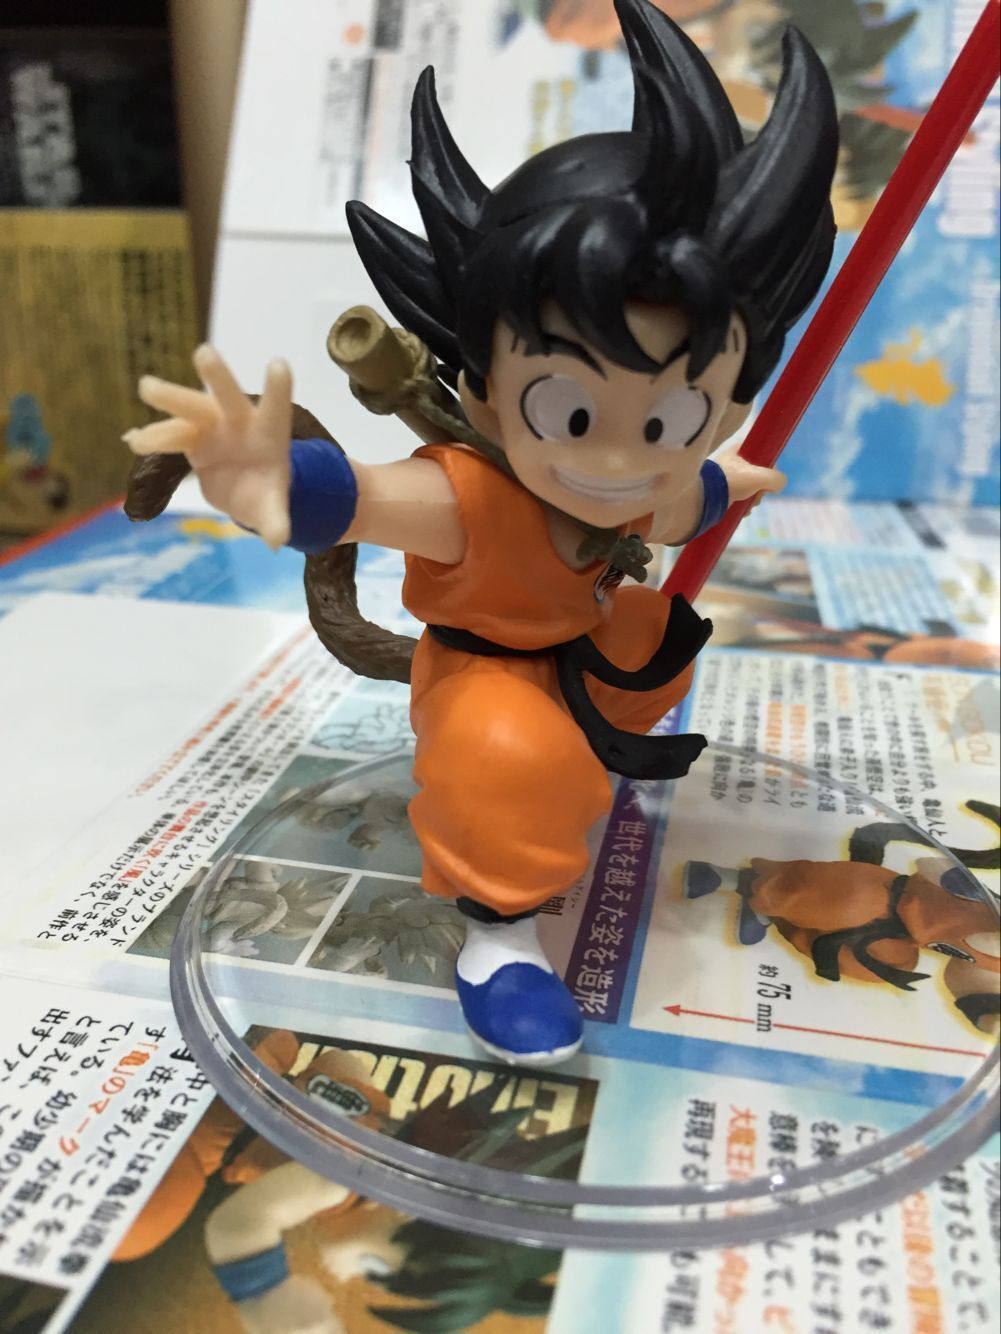 Baby Son Goku Dragon Ball Saiyan Kakarotto Cute Action Figure DIY Animation Doll Kids Toy Miniature Model For Car Decoration new hot 21cm dragon ball super saiyan 3 son goku kakarotto action figure toys doll collection christmas gift with box sy889